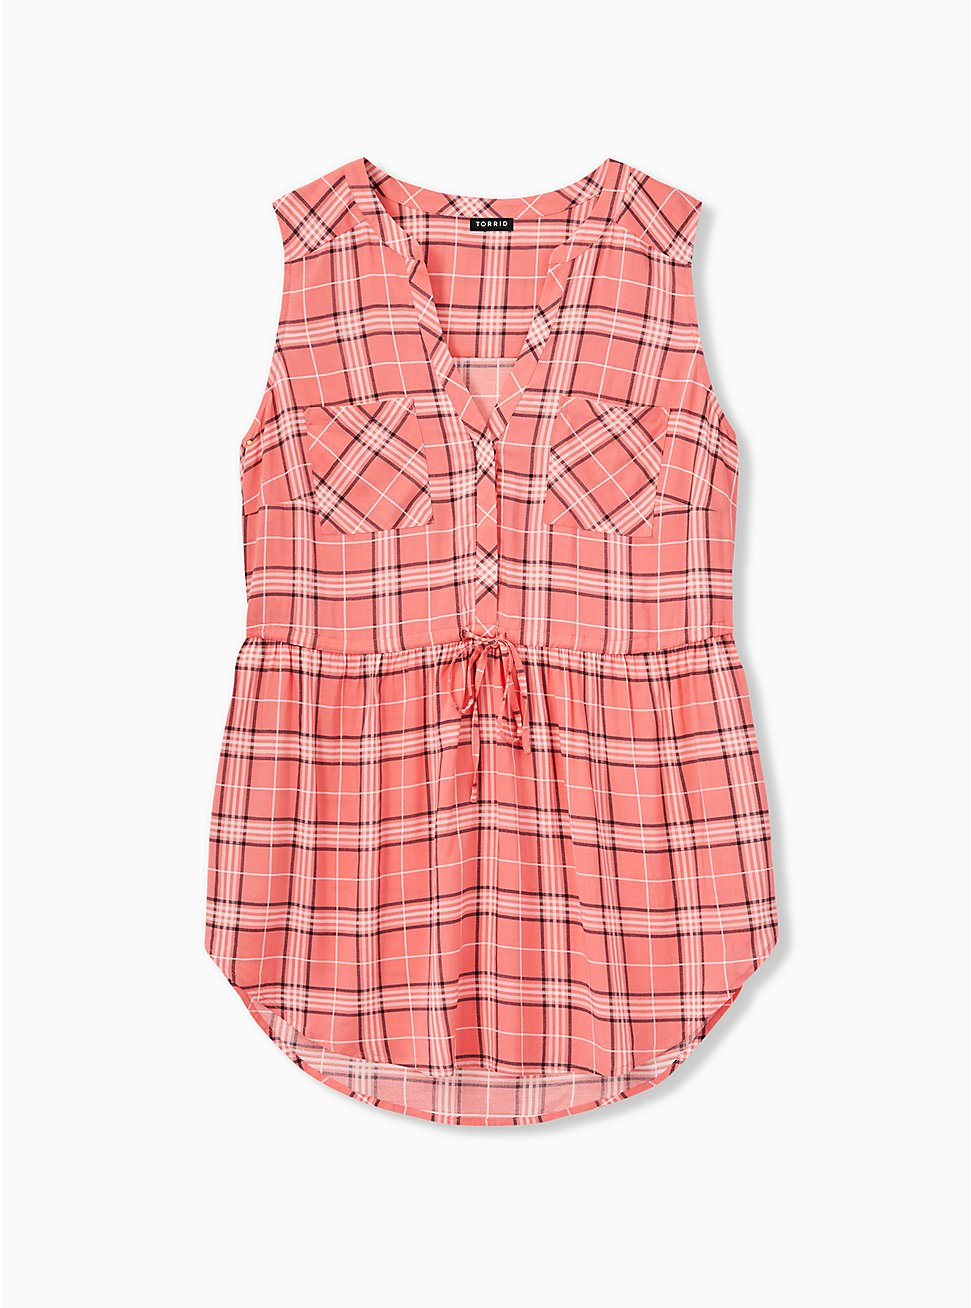 Emma - Coral Plaid Challis Drawstring Babydoll Tunic Tank , PLAID, hi-res